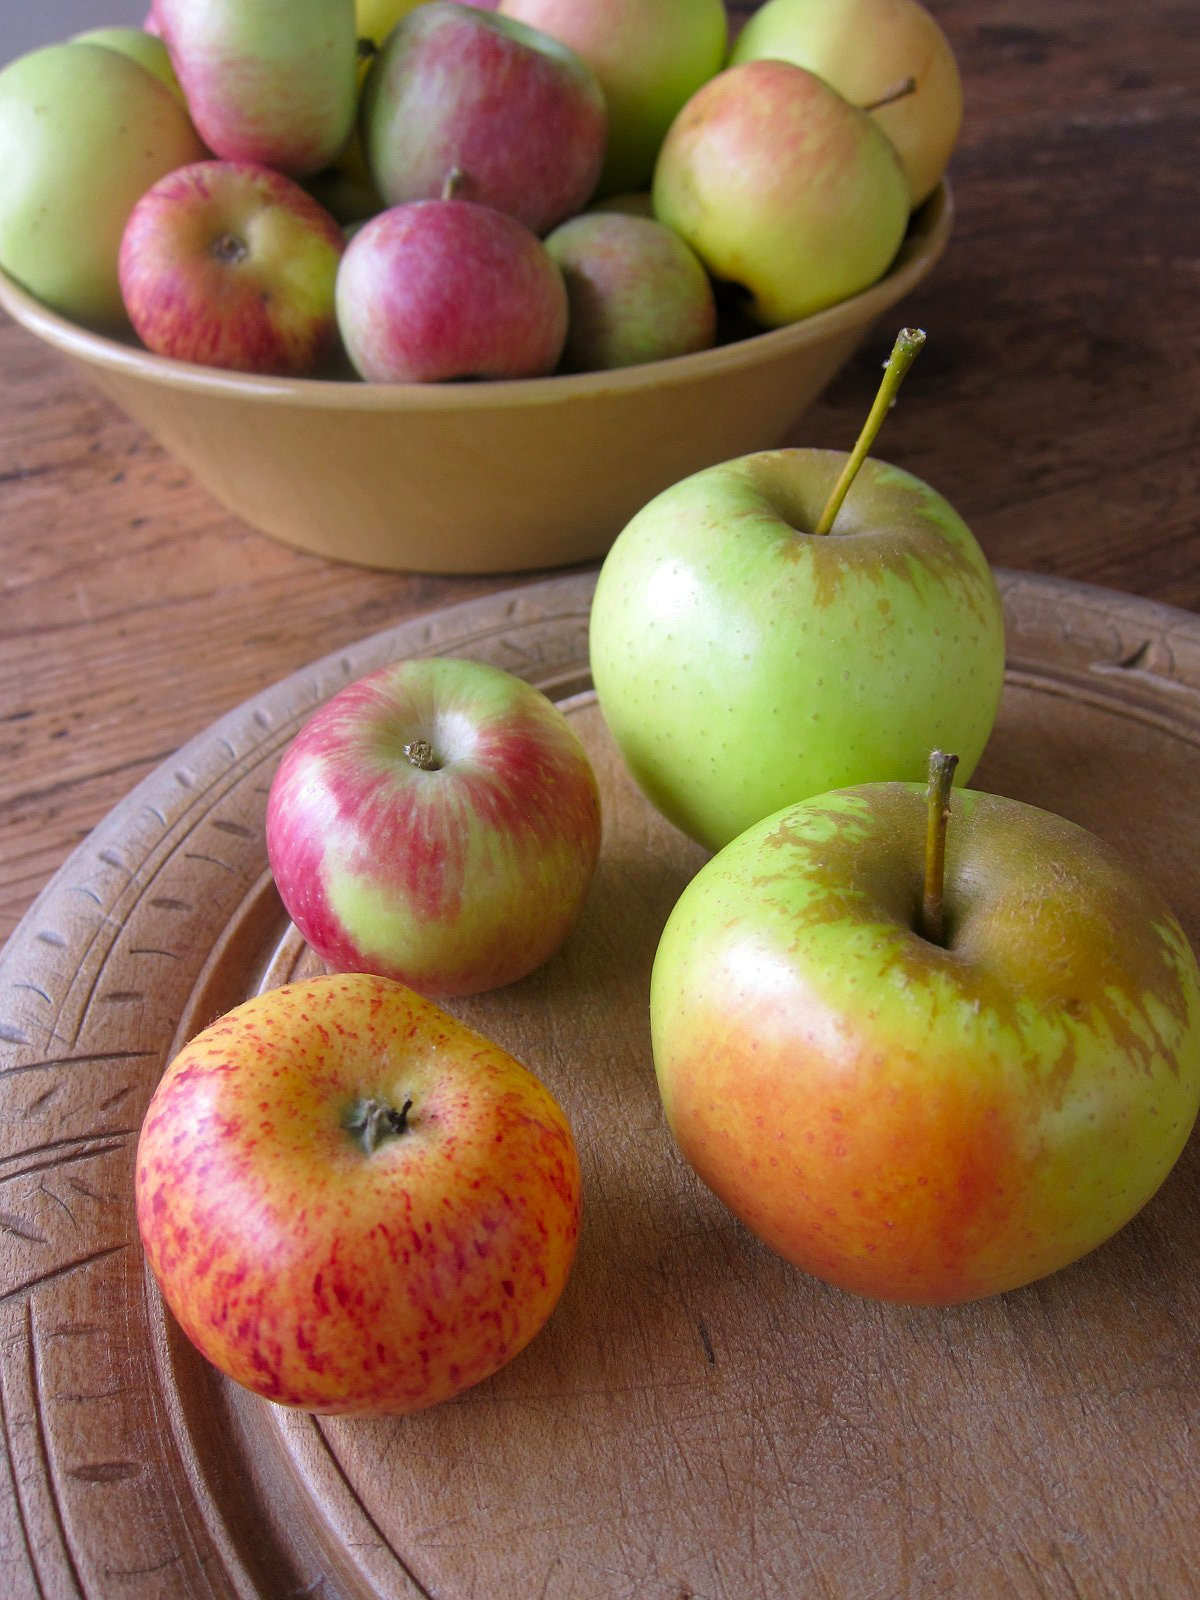 Chronica Domus: The Apple Harvest Is In!